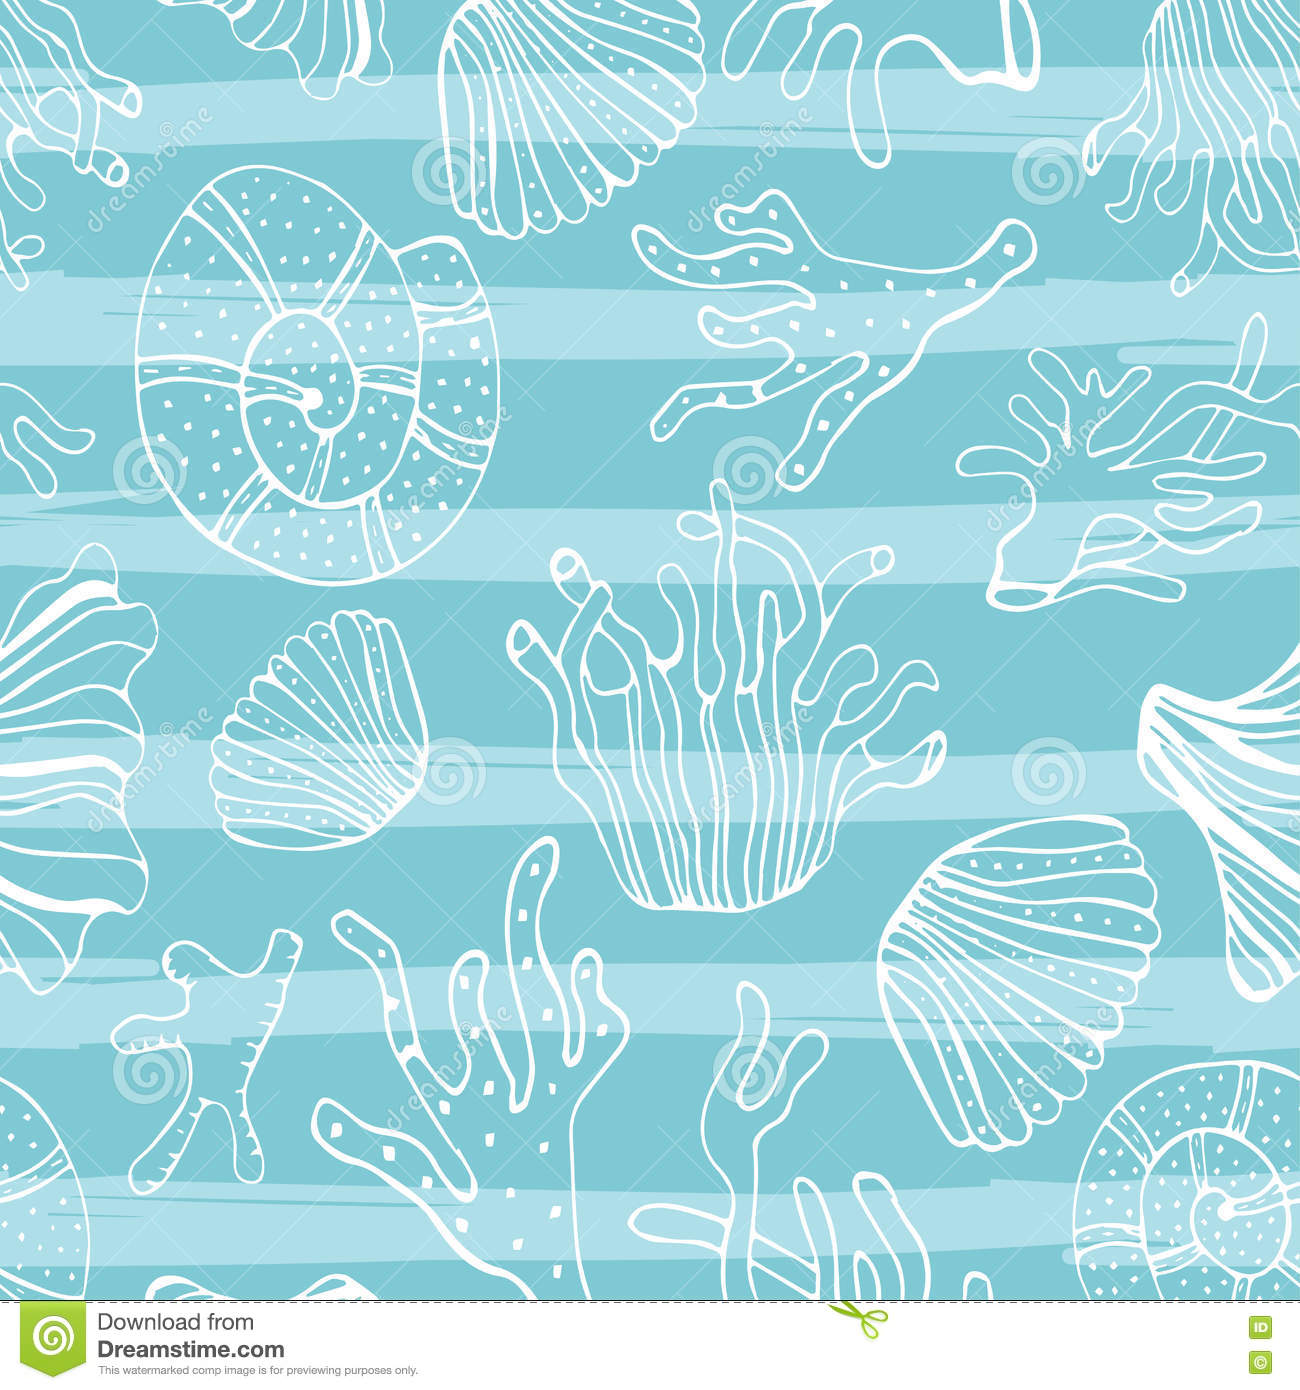 The wallpaper coloring book - Sea Shells Seastars And Corals Seamless Background Blue White Pattern For Coloring Book